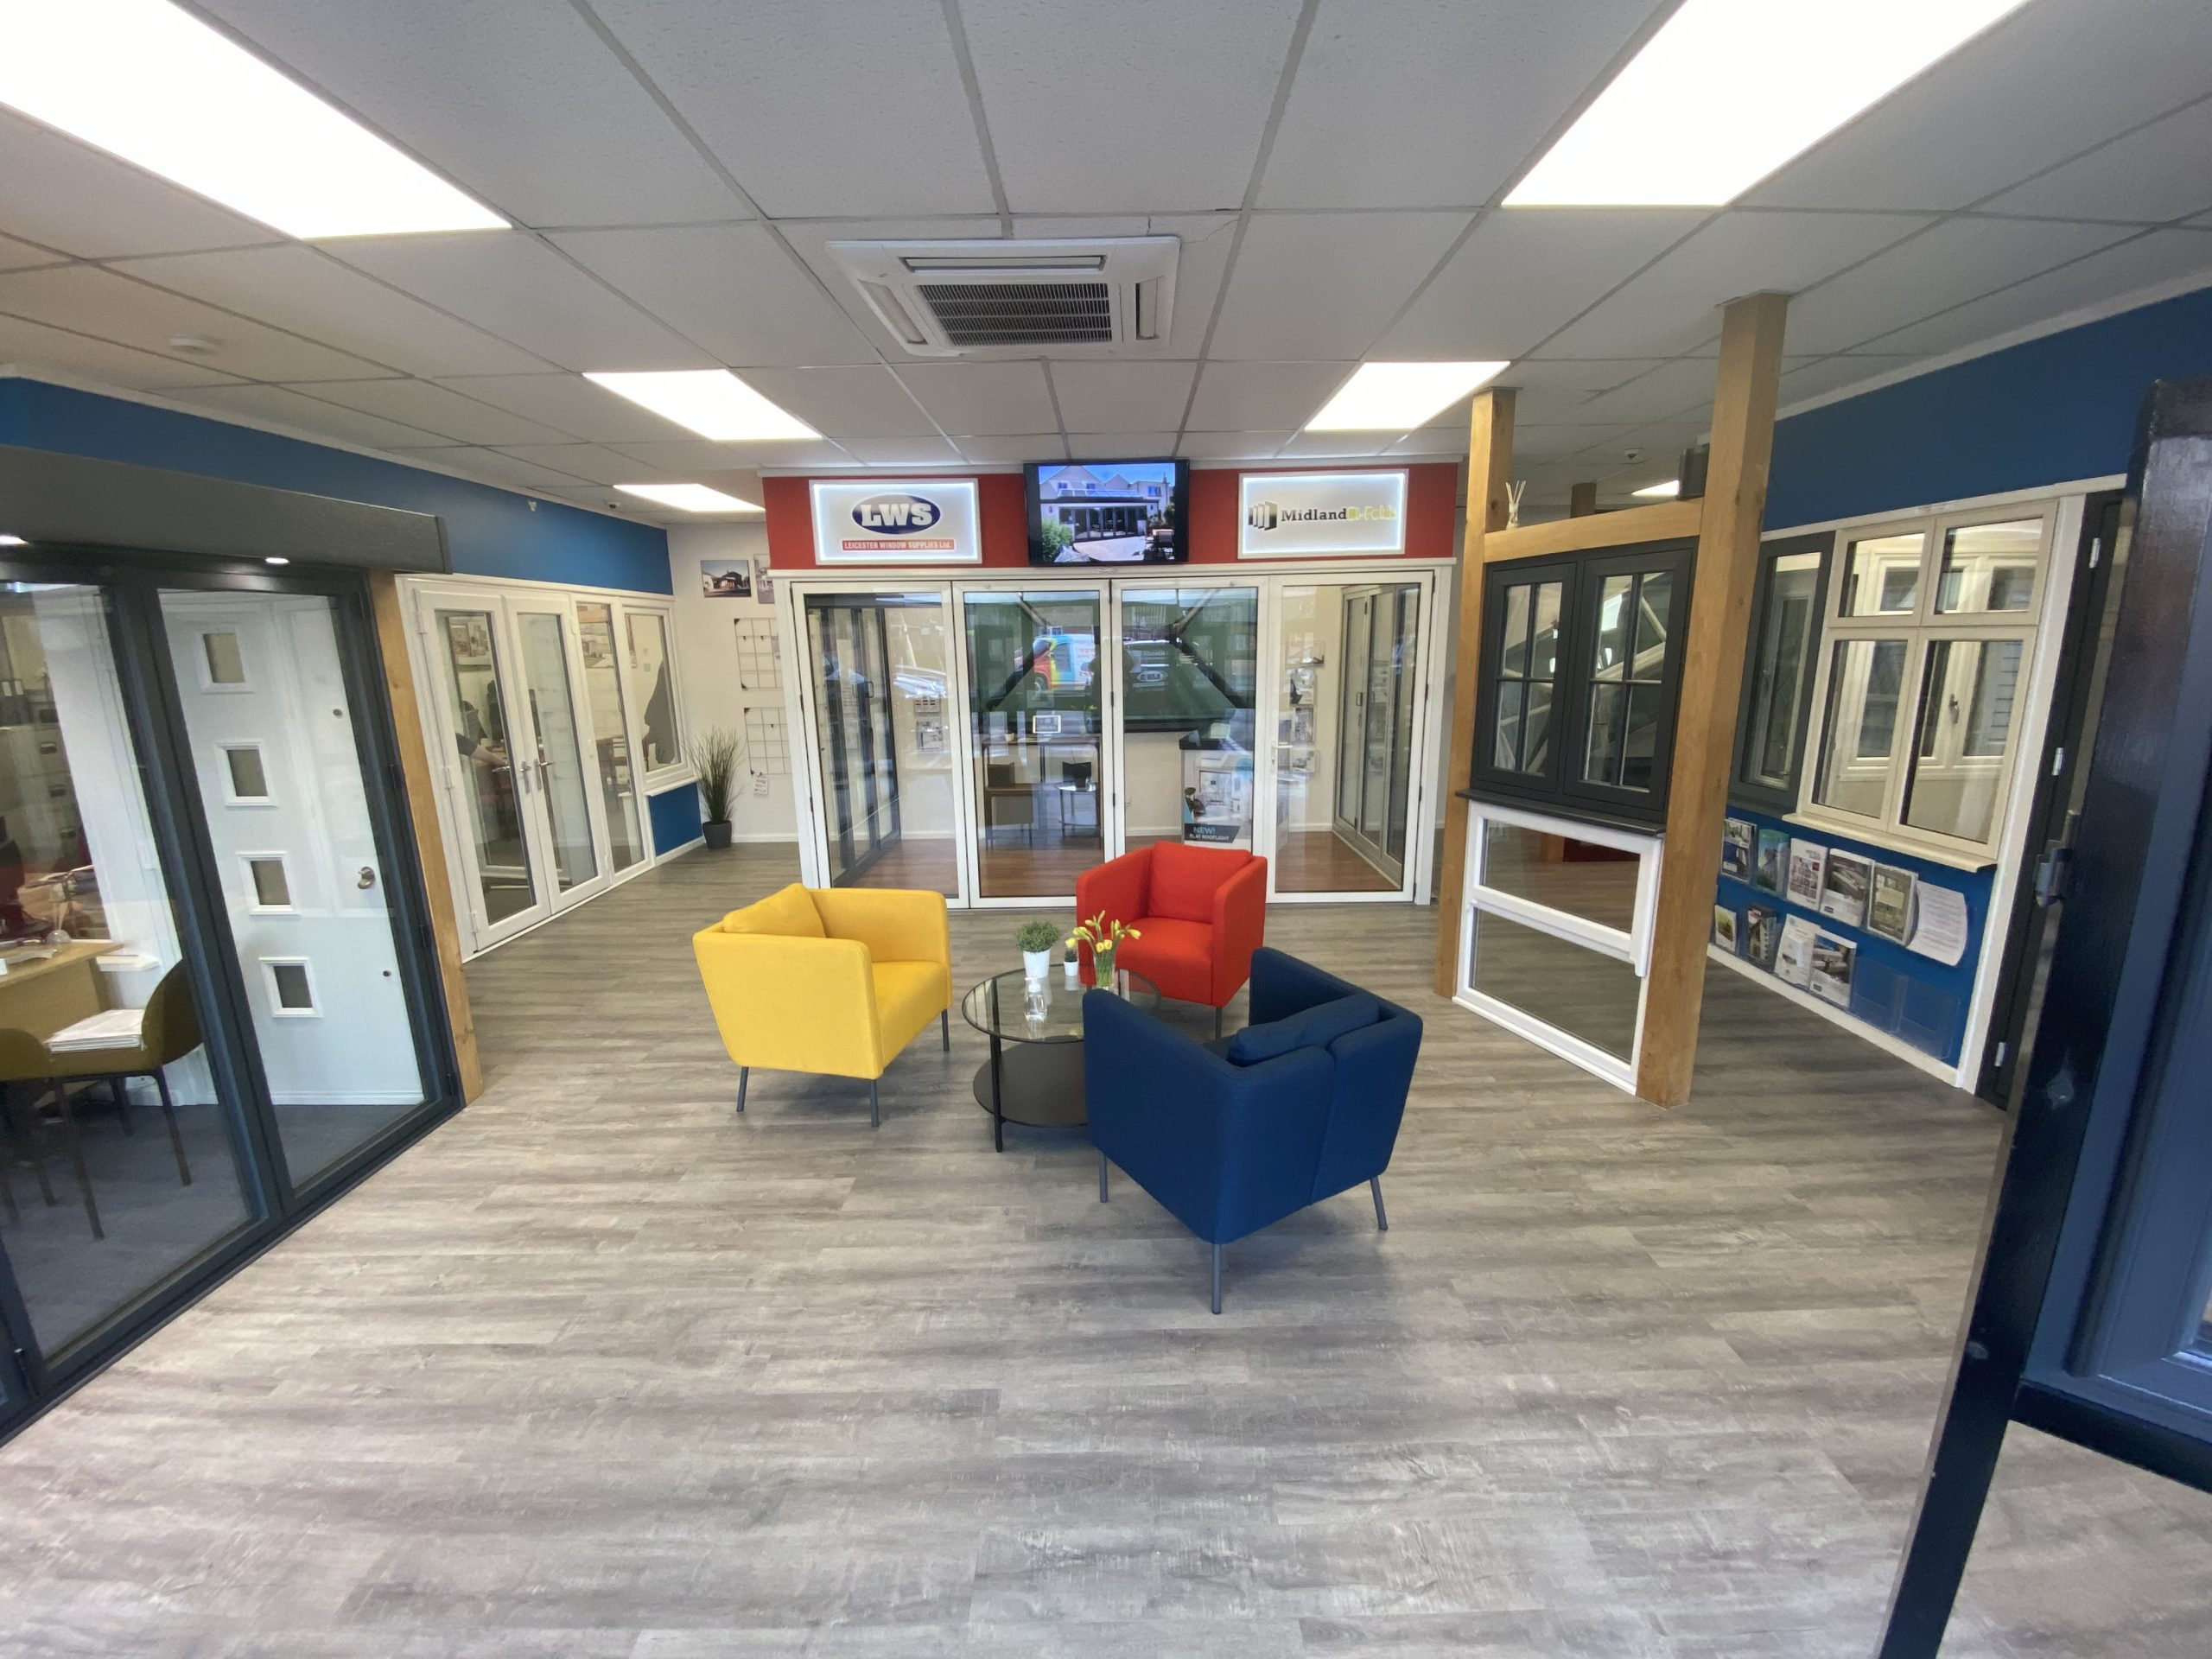 Leicester Windows Supplies New Windows Showroom in Syston